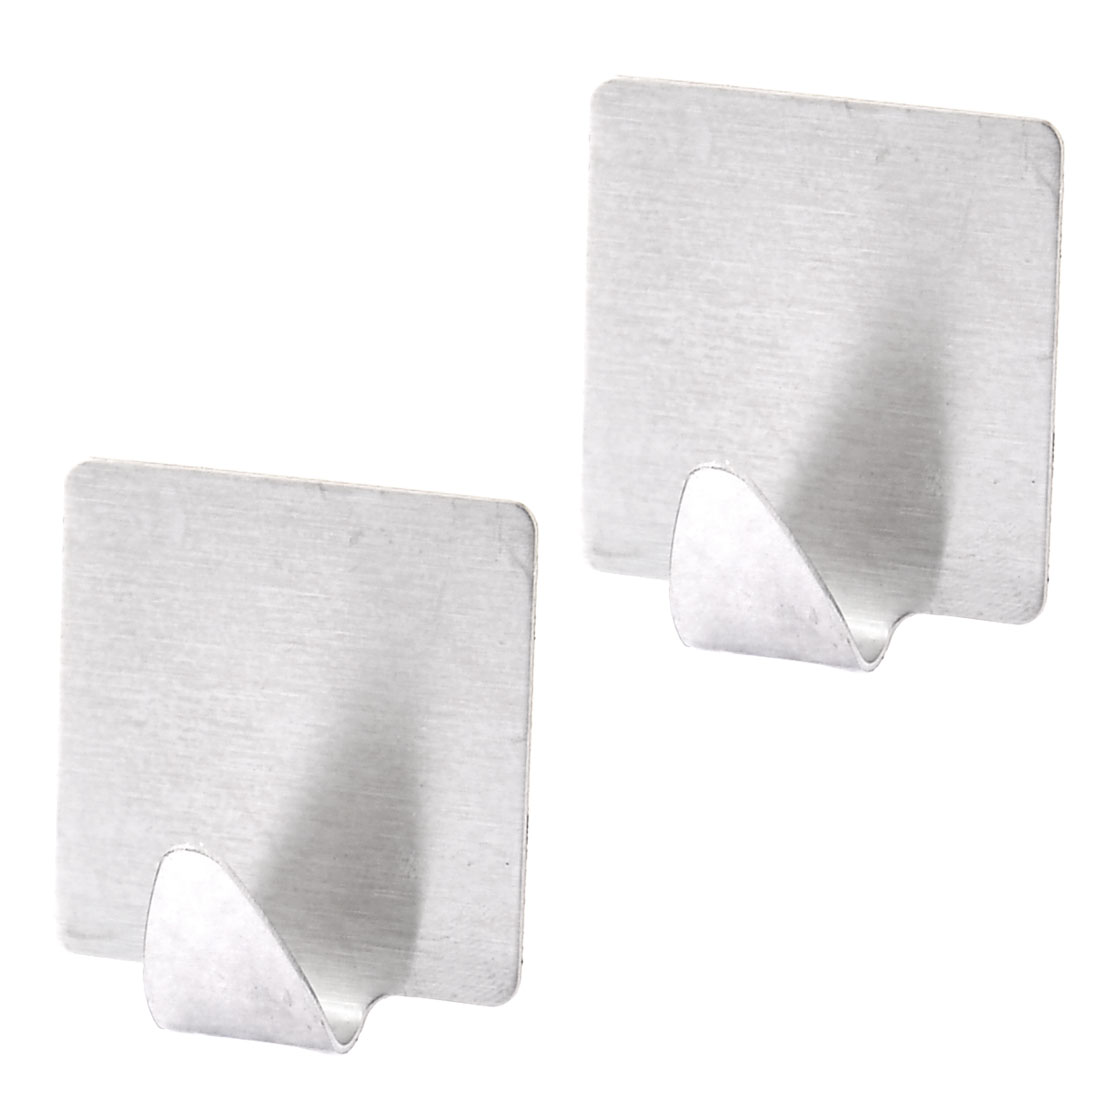 Home Kitchen Wall Door Window Metal Self-adhesive Sticky Hook Holder 2pcs